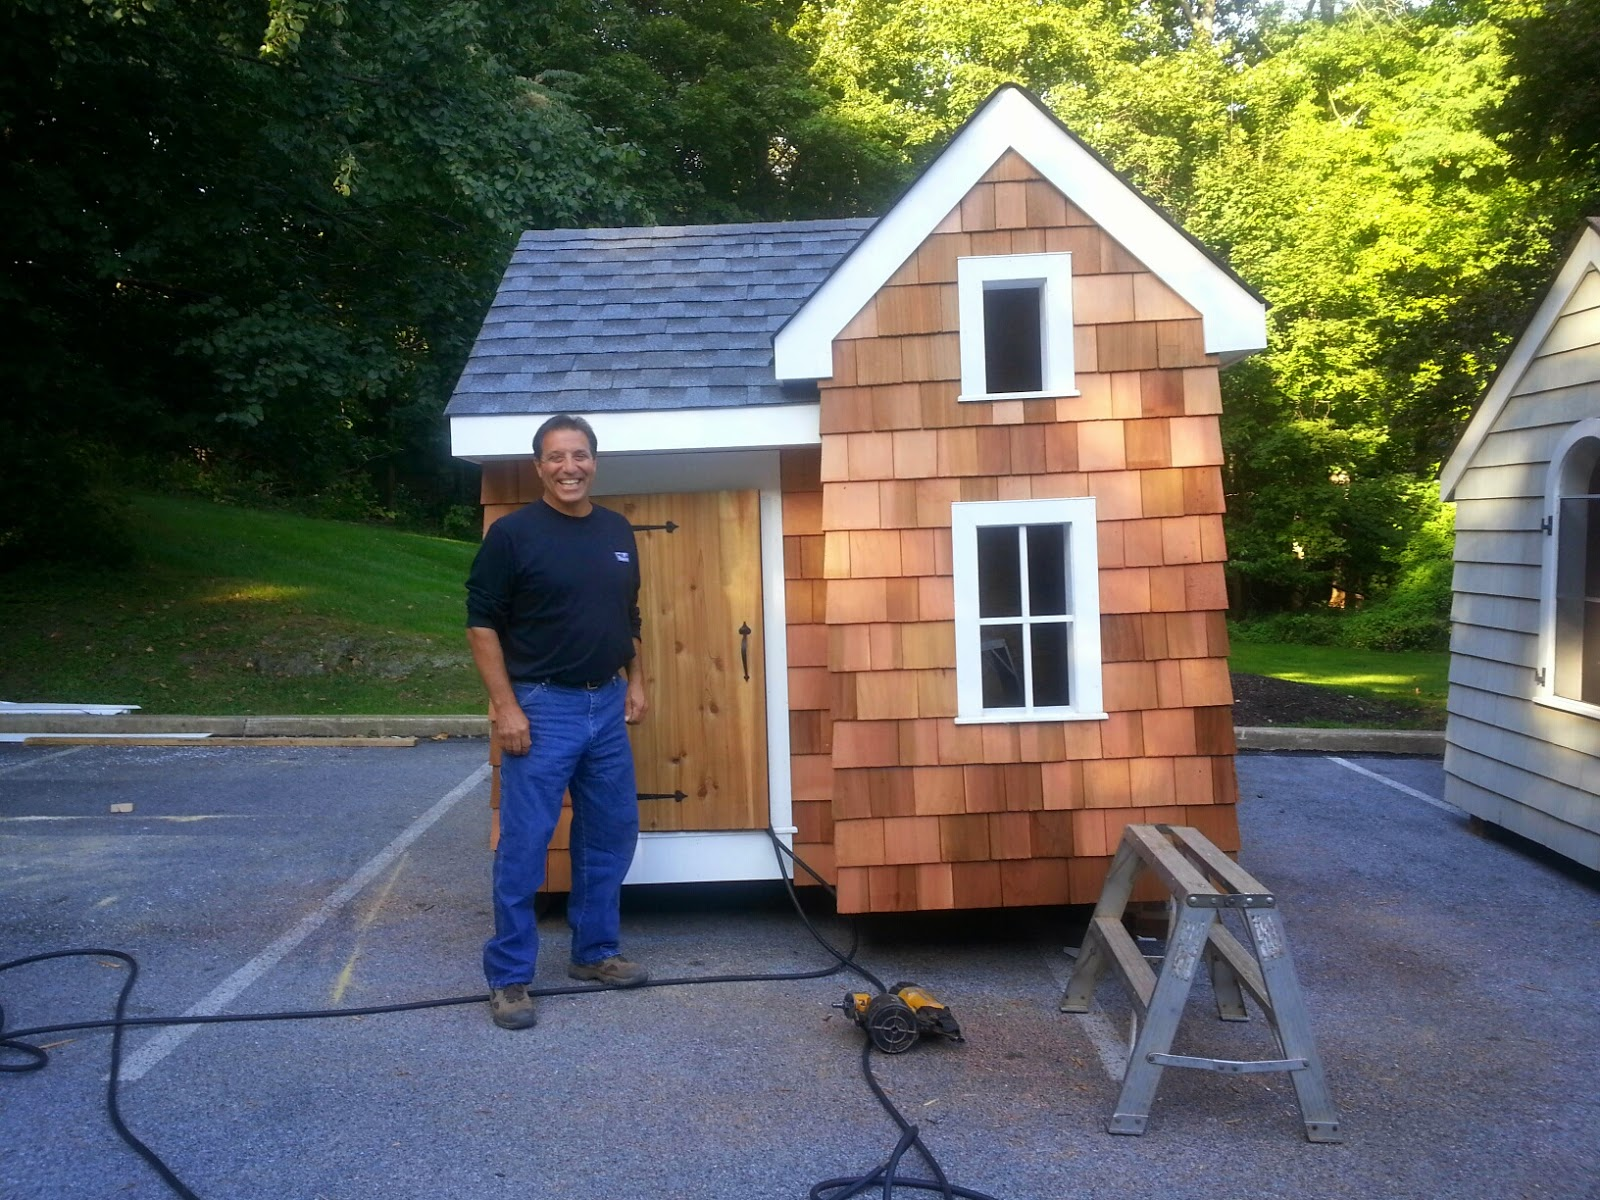 Pohlig Builders superintendent, Vince Massimini oversees the construction of the dream playhouses for the HBA of Chester and Delaware Counties Kenzie's Kure Playhouse Drawing